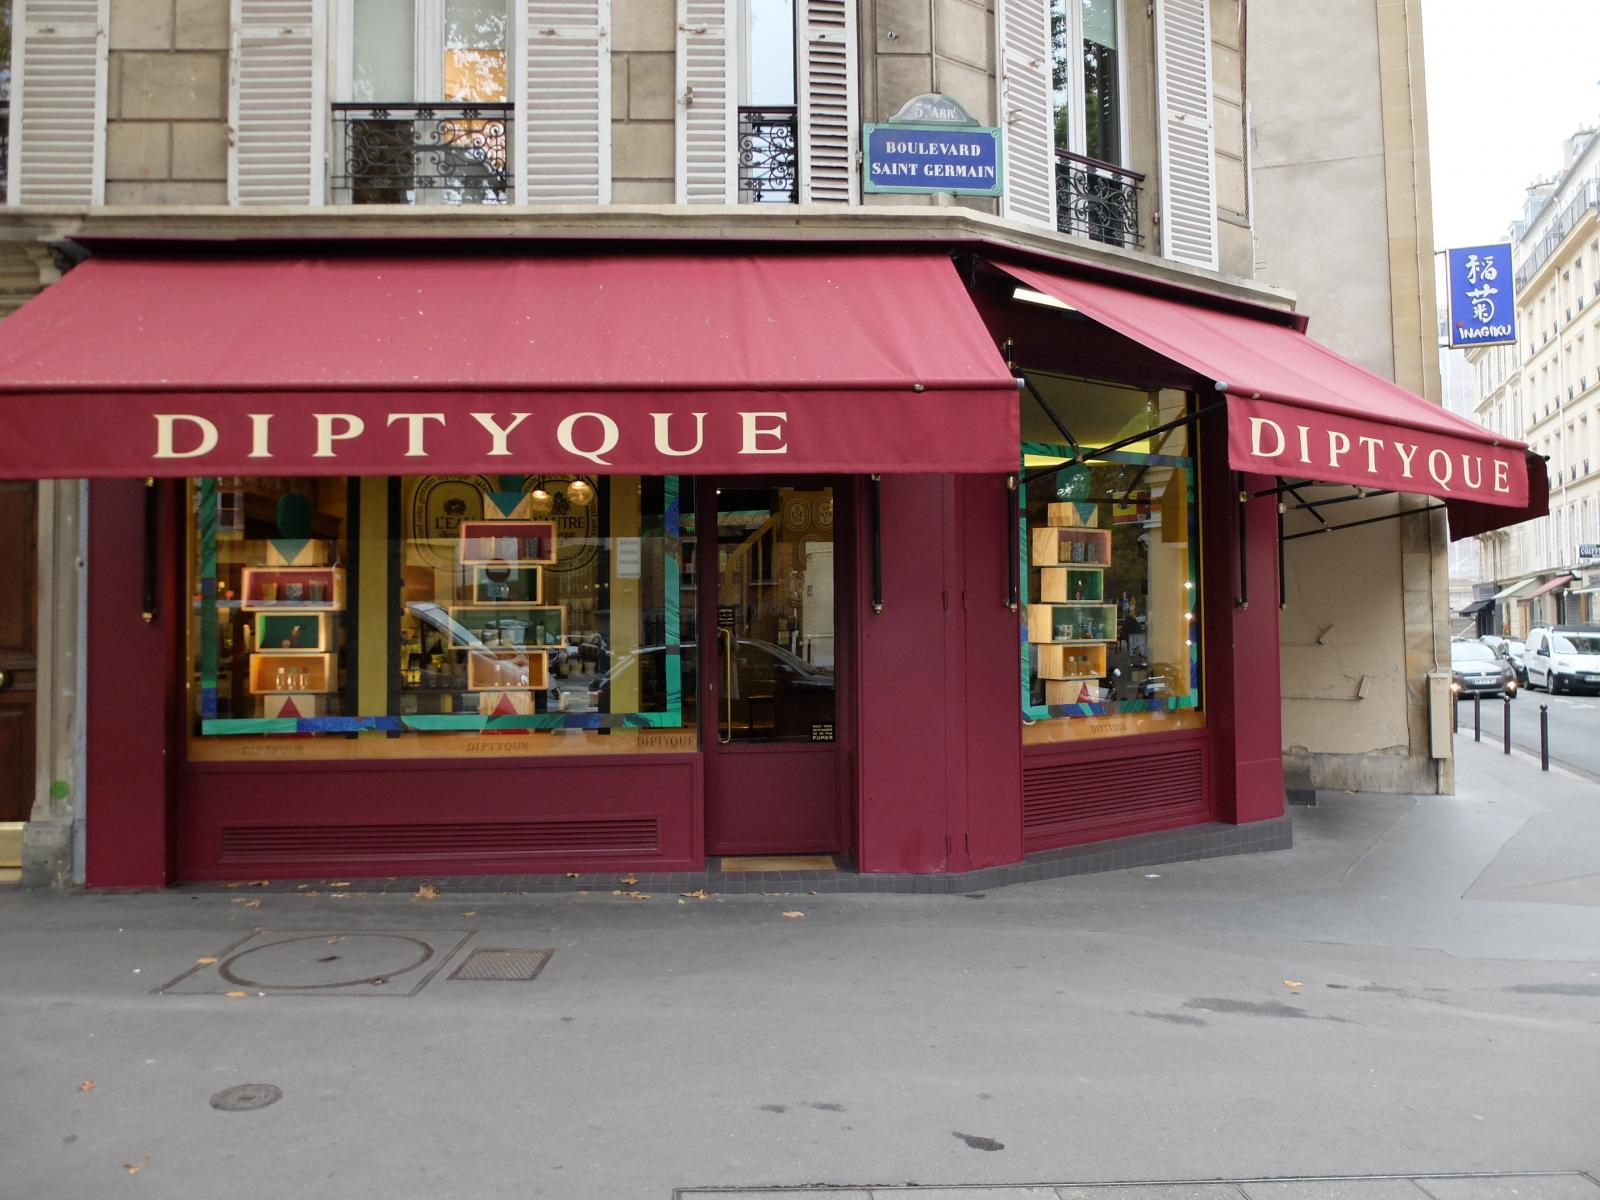 Coup de coeur cire trudon vs diptyque madame d core for 34 boulevard saint germain paris